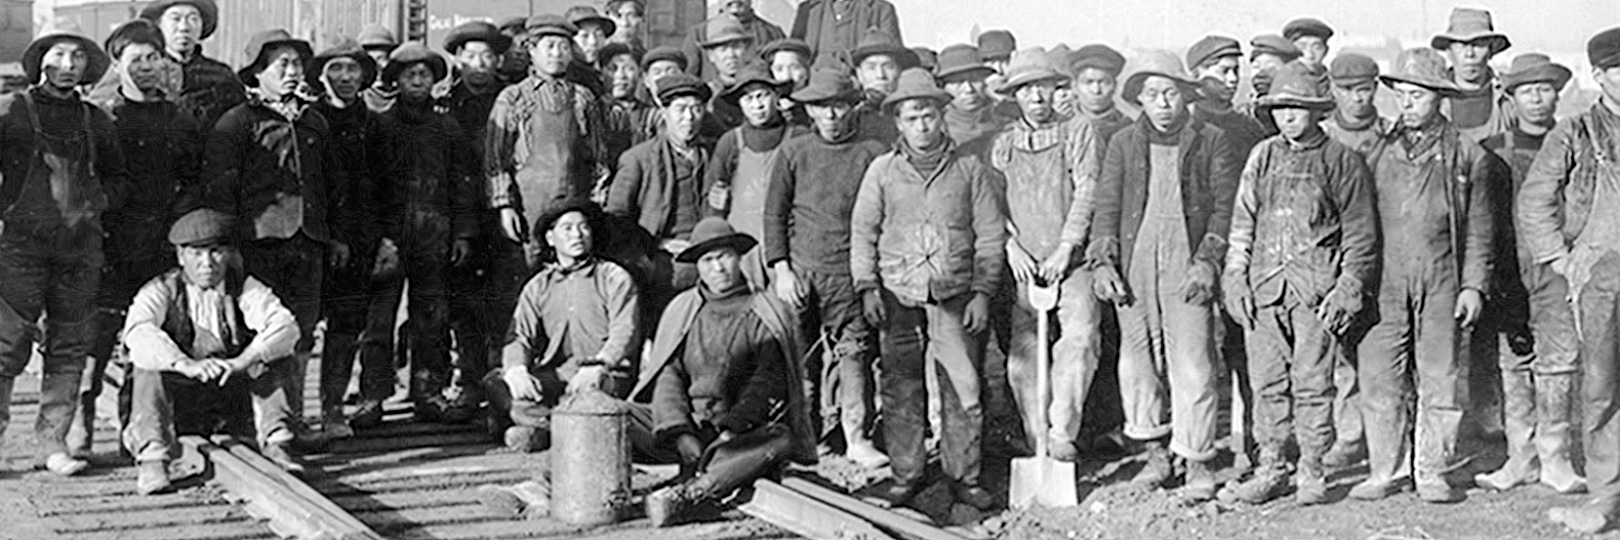 chinese-railroad-workers